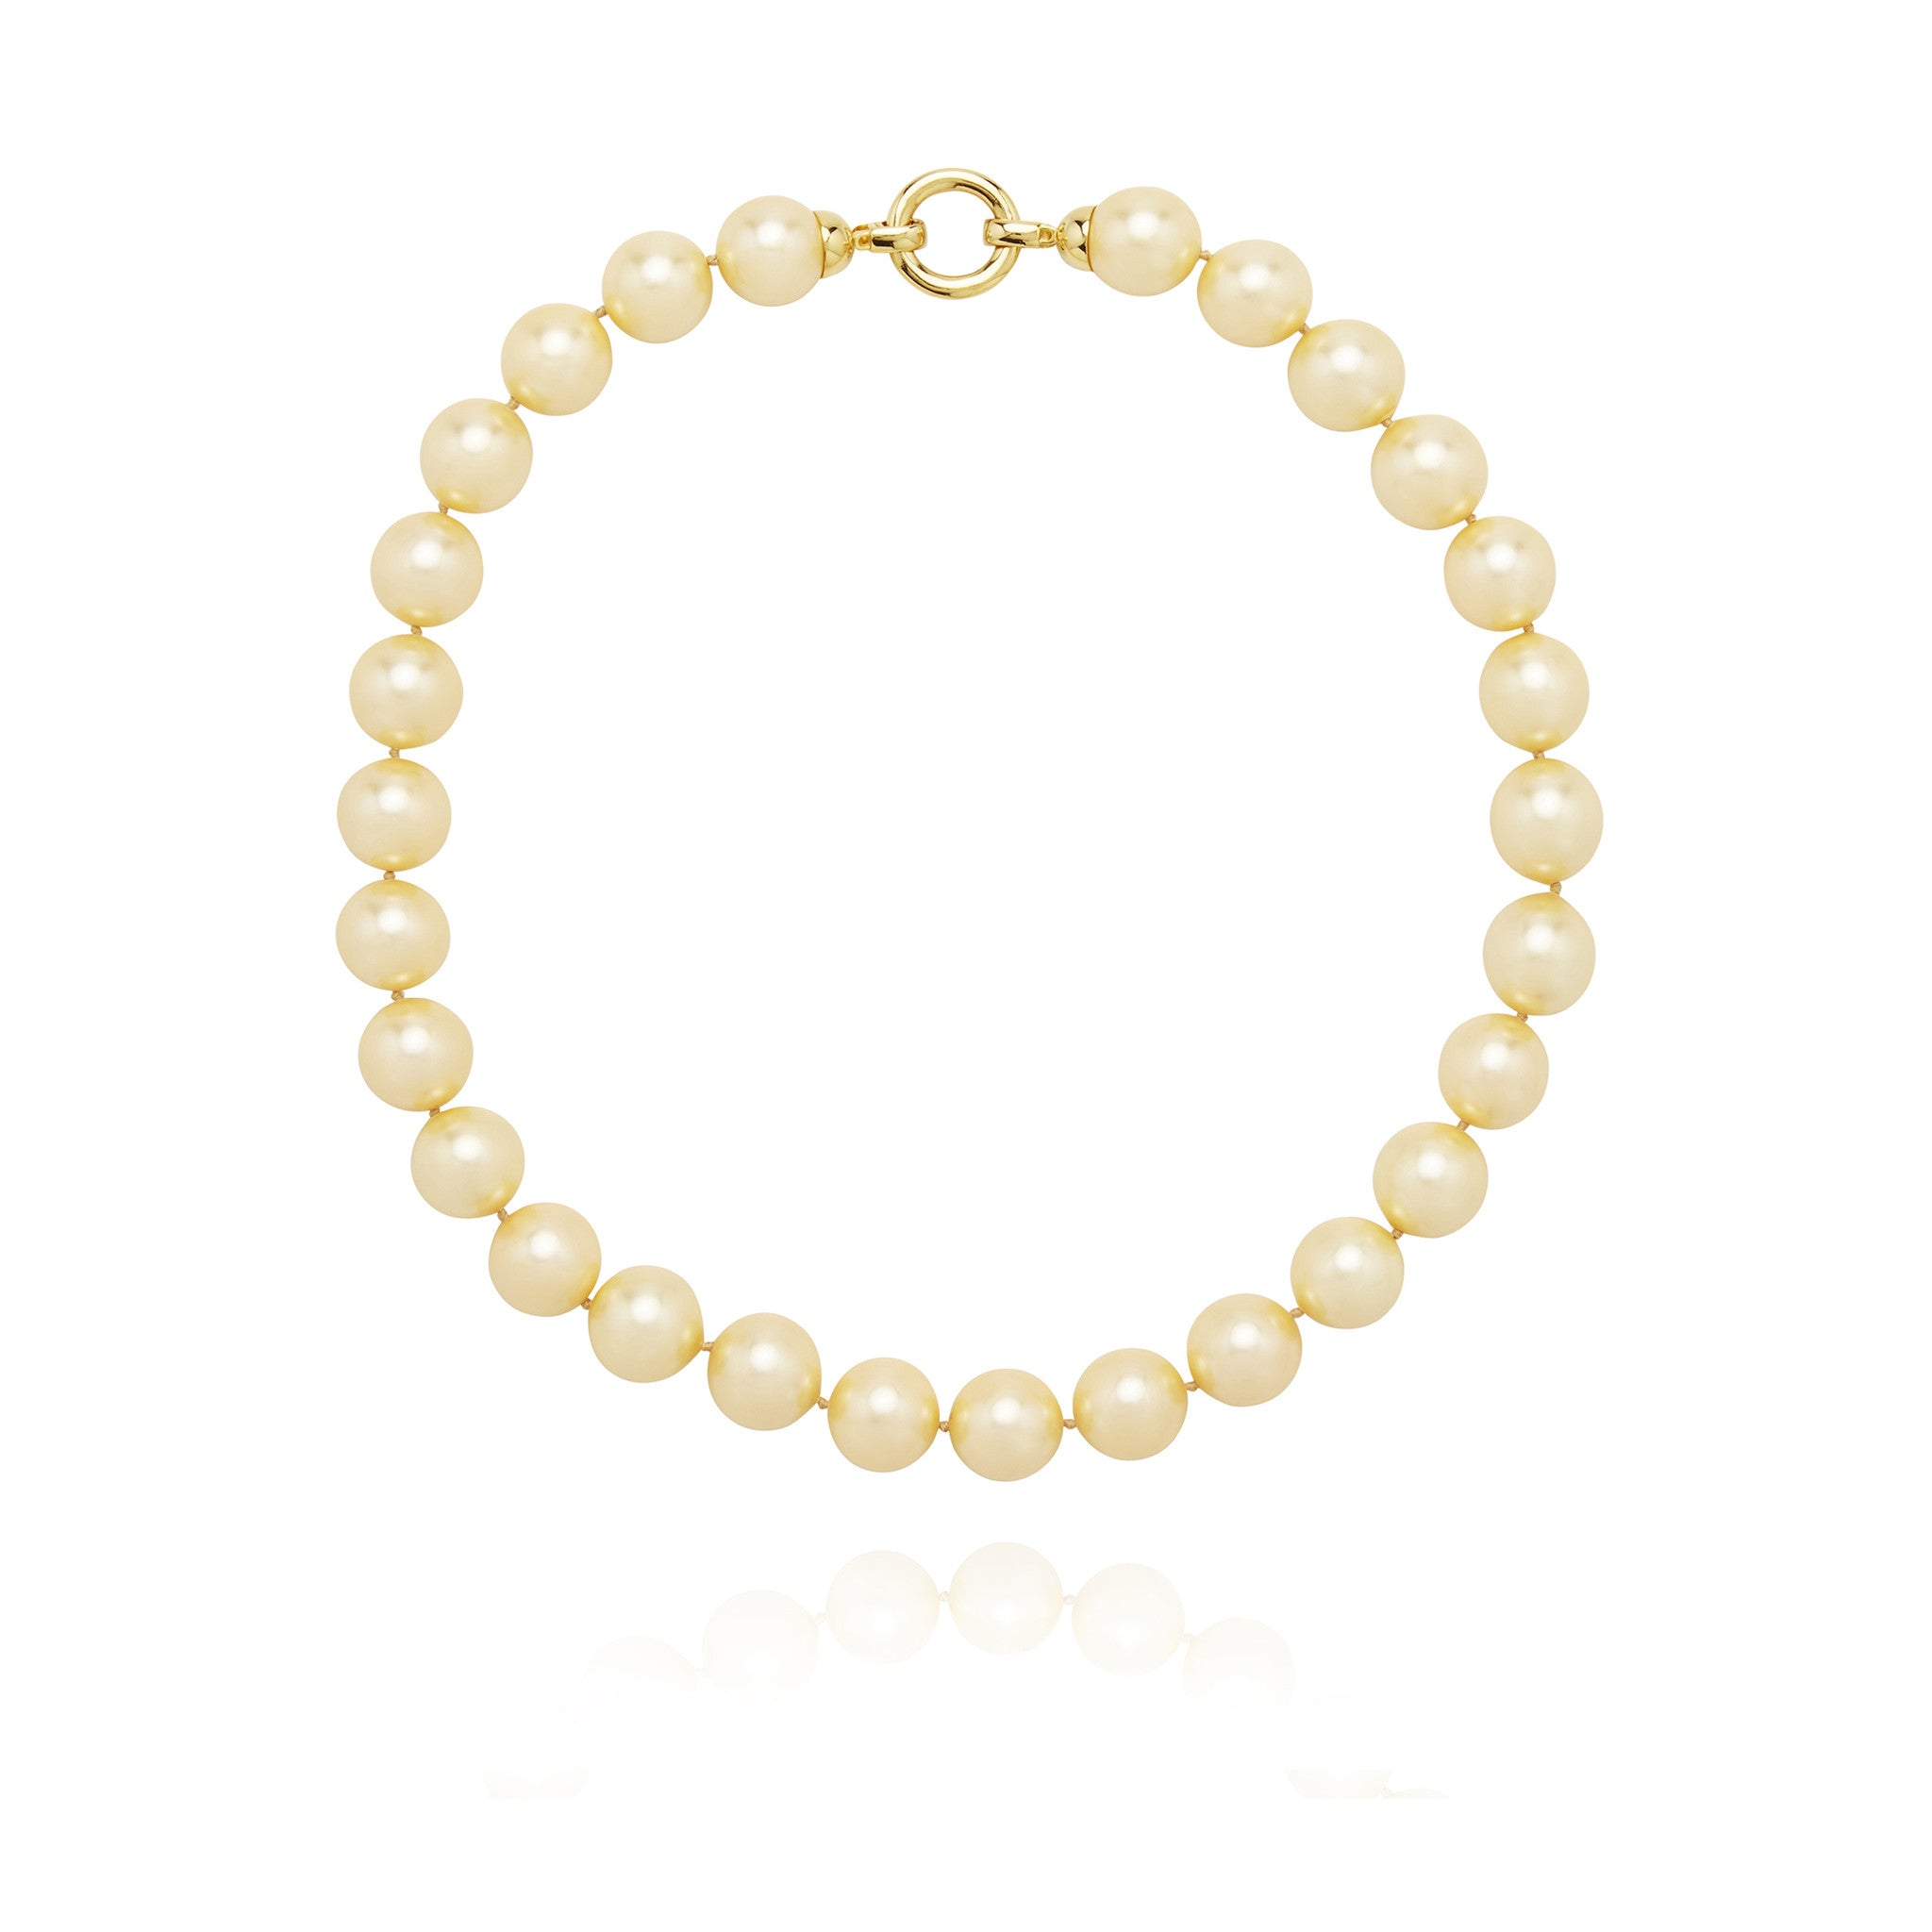 Pastel Yellow Gold Pearl Necklace